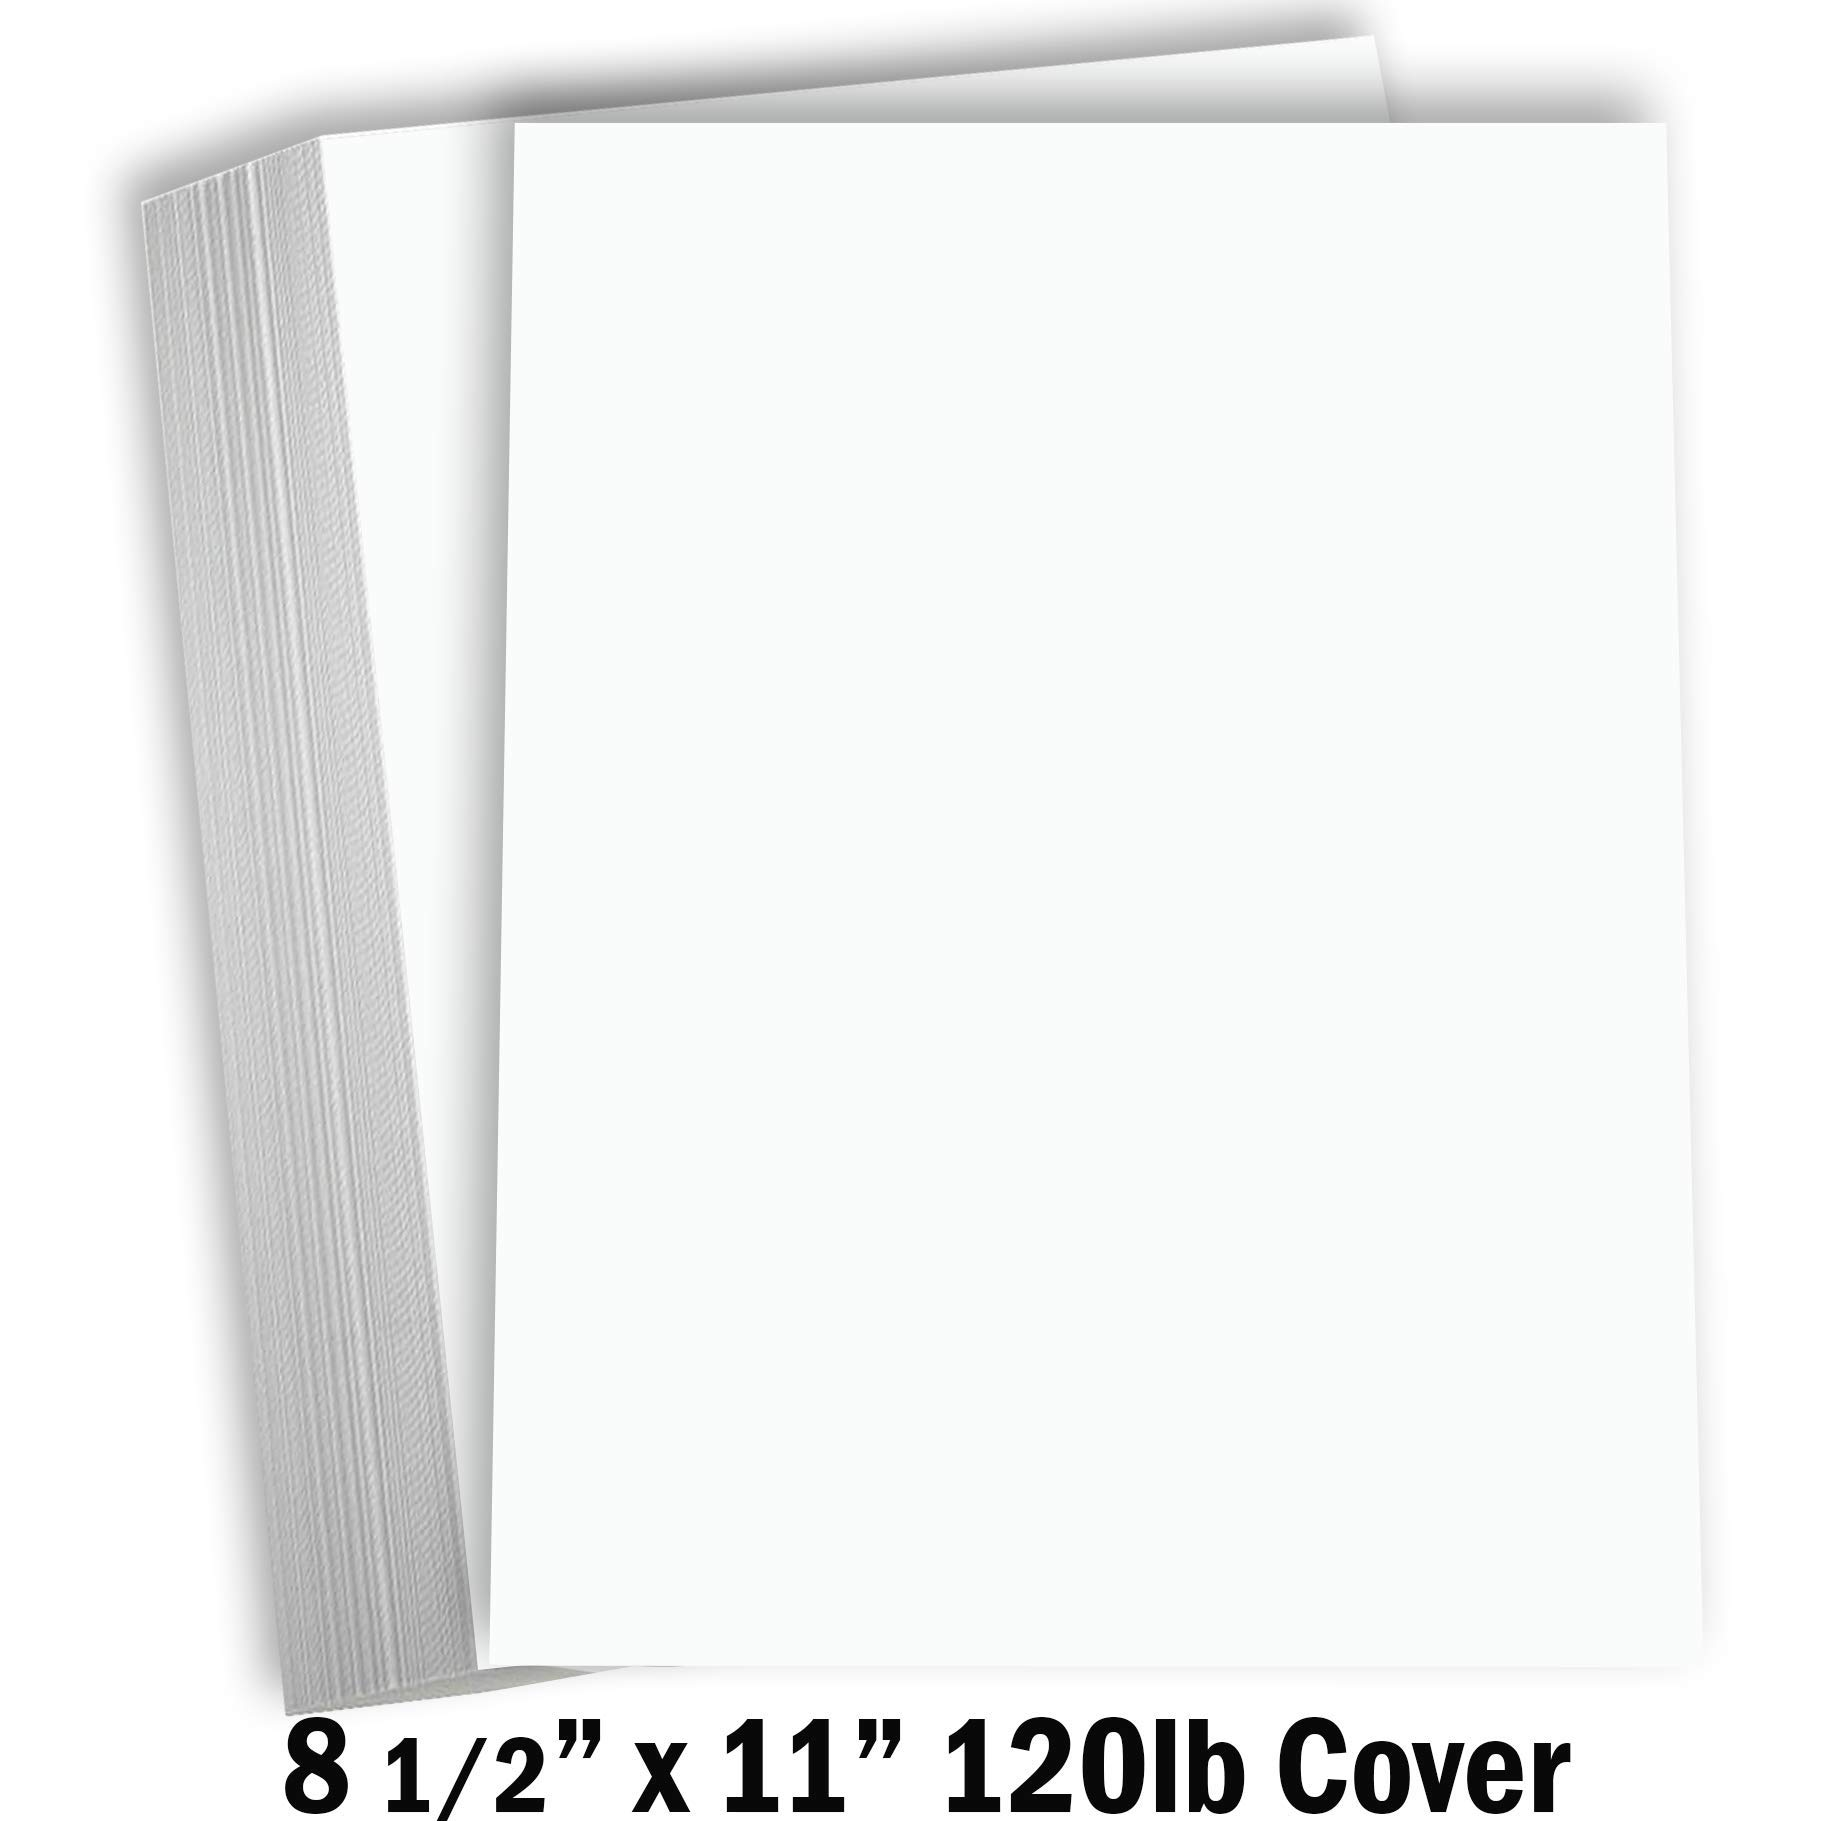 Hamilco White Cardstock Thick Paper 8 1/2 x 11'' Heavy Weight 120 lb Cover Card Stock - 50 Pack